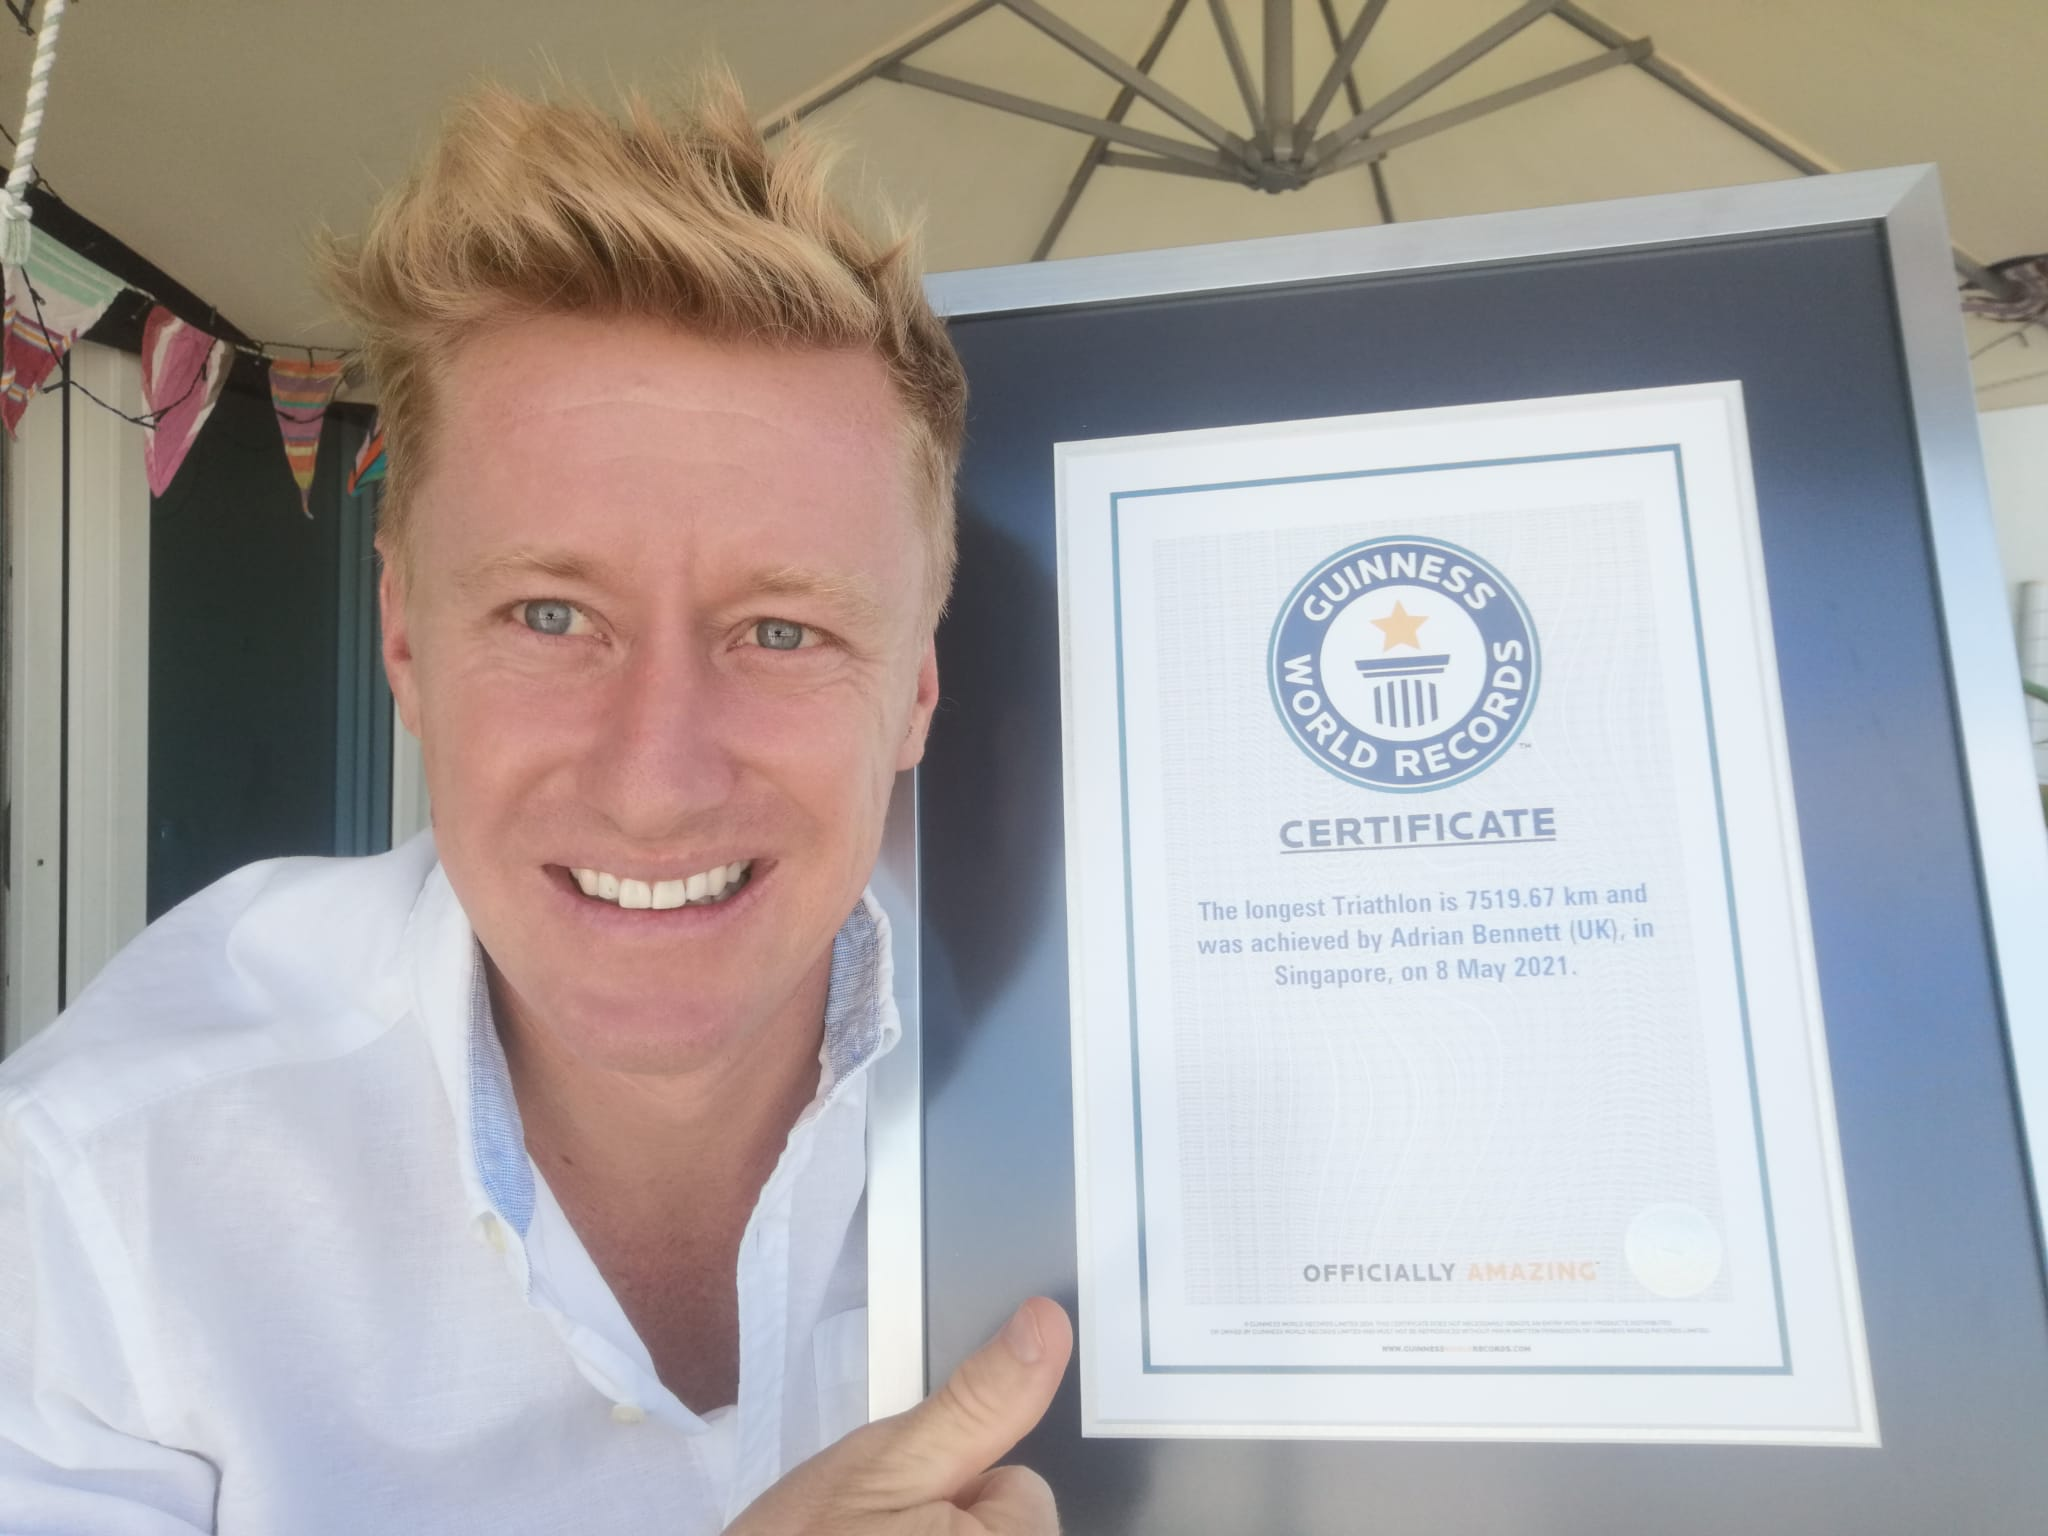 Adrian with certificate